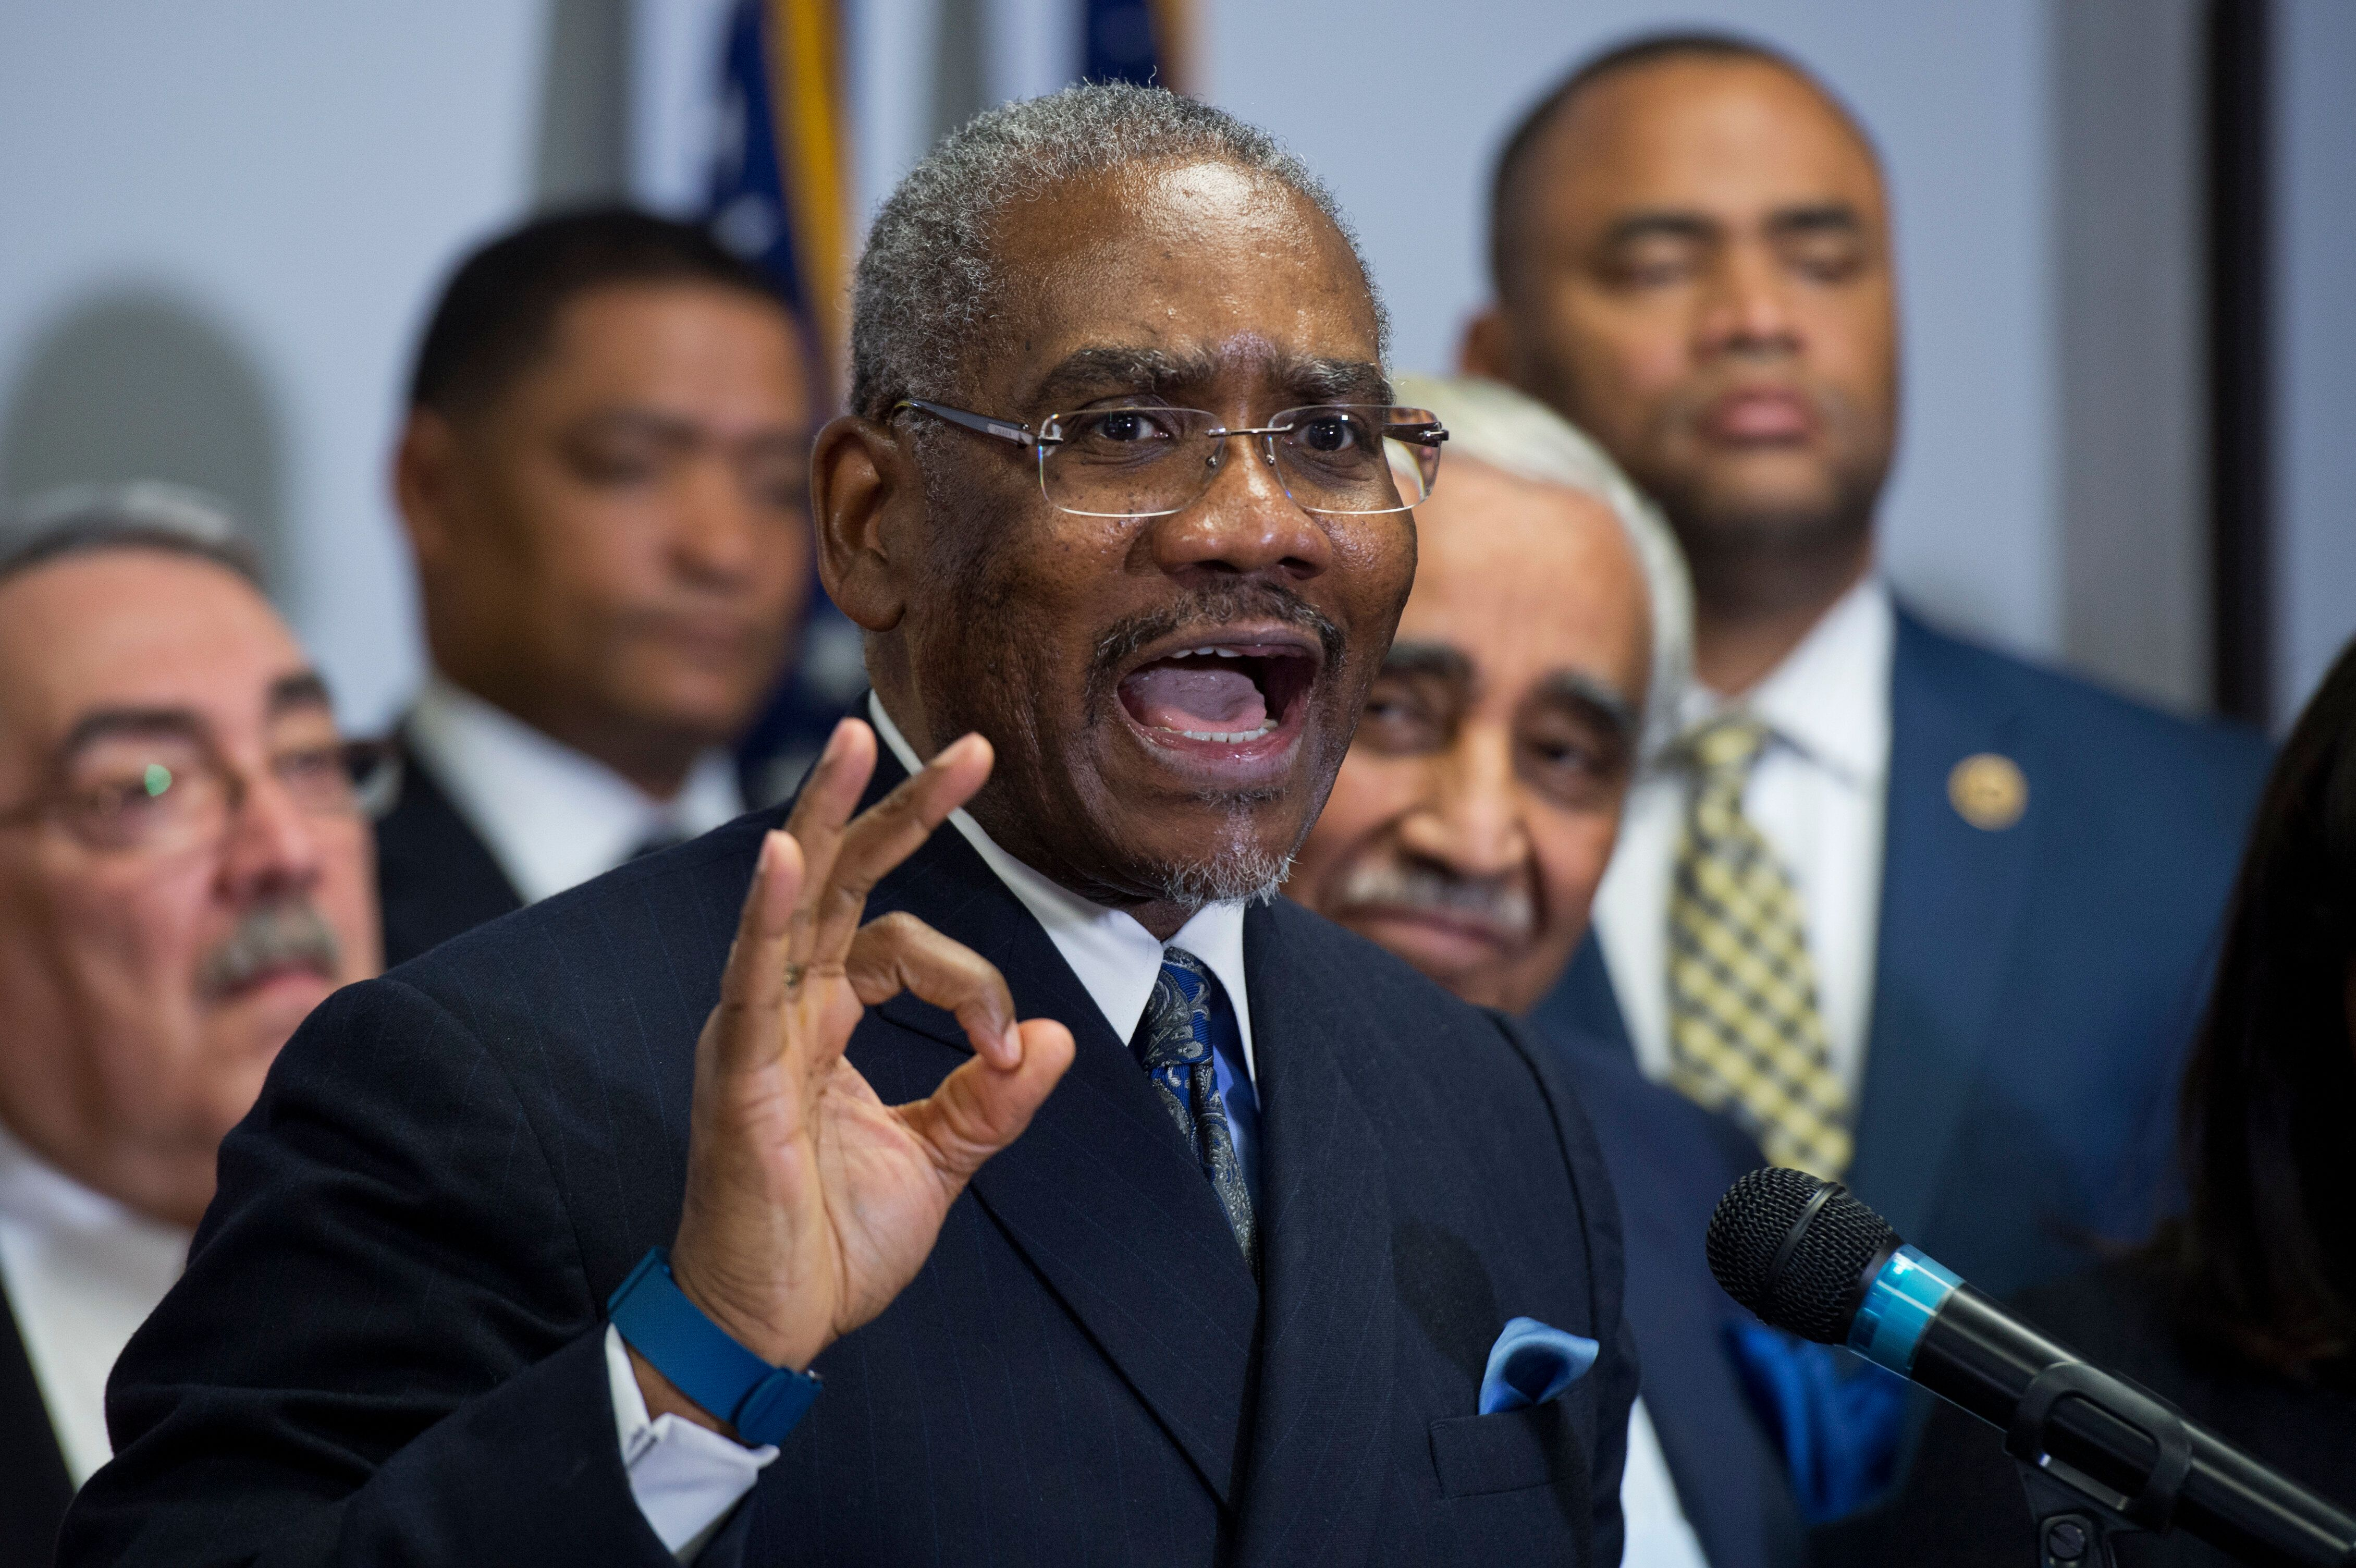 Rep. Gregory Meeks (D-N.Y.), chairman of the Congressional Black Caucus PAC, has defended the decision to endorse Rep. Eliot